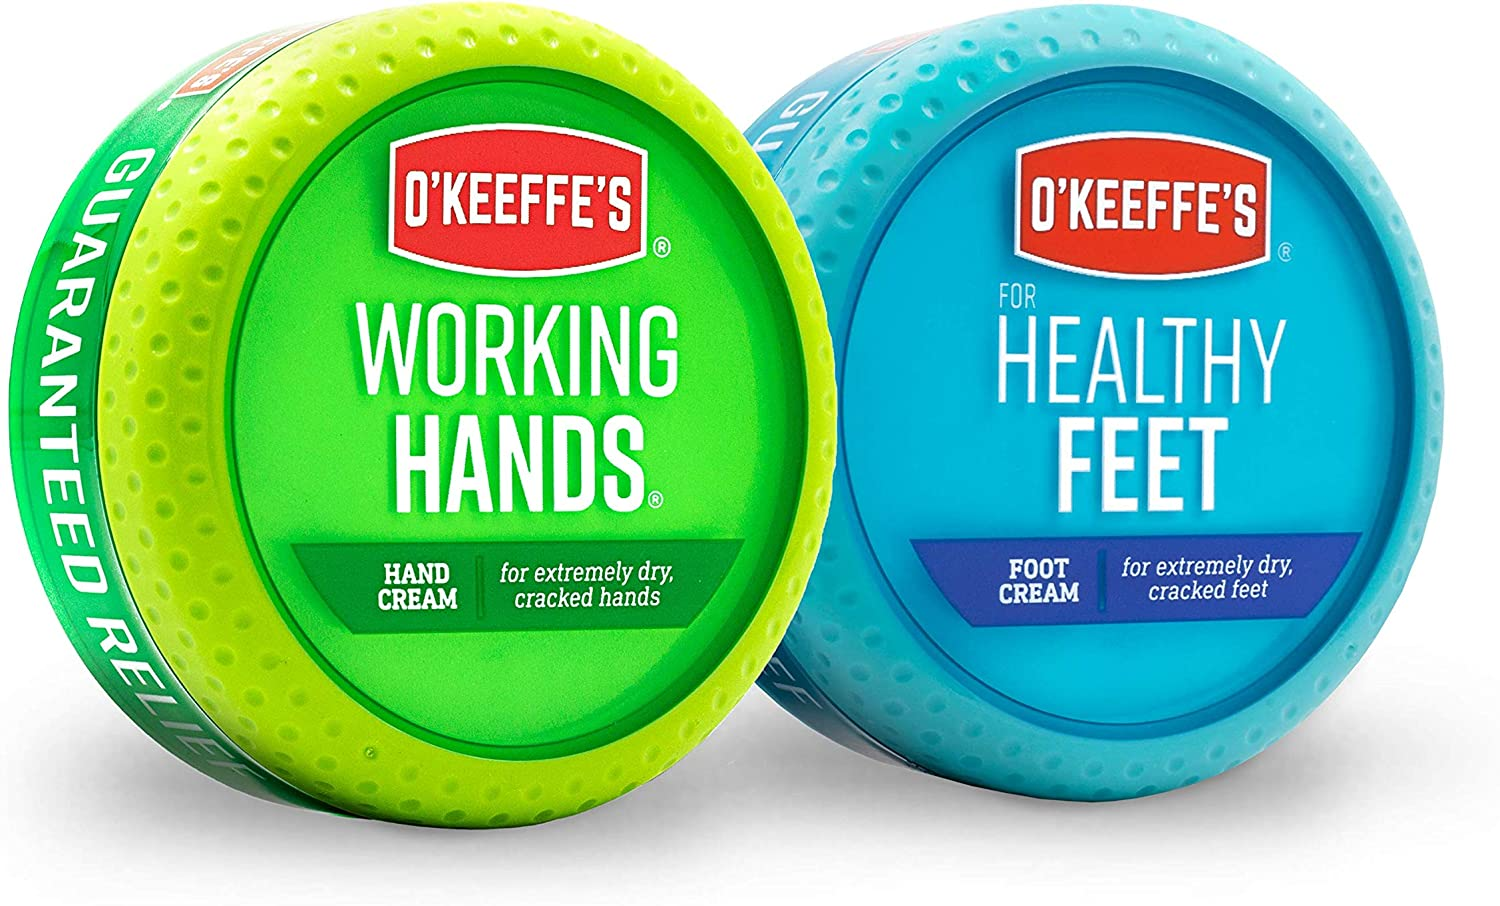 O'Keeffe's Working Hands 3.4 ounce & Healthy Feet 3.2 ounce Combination Pack of Jars: Home Improvement